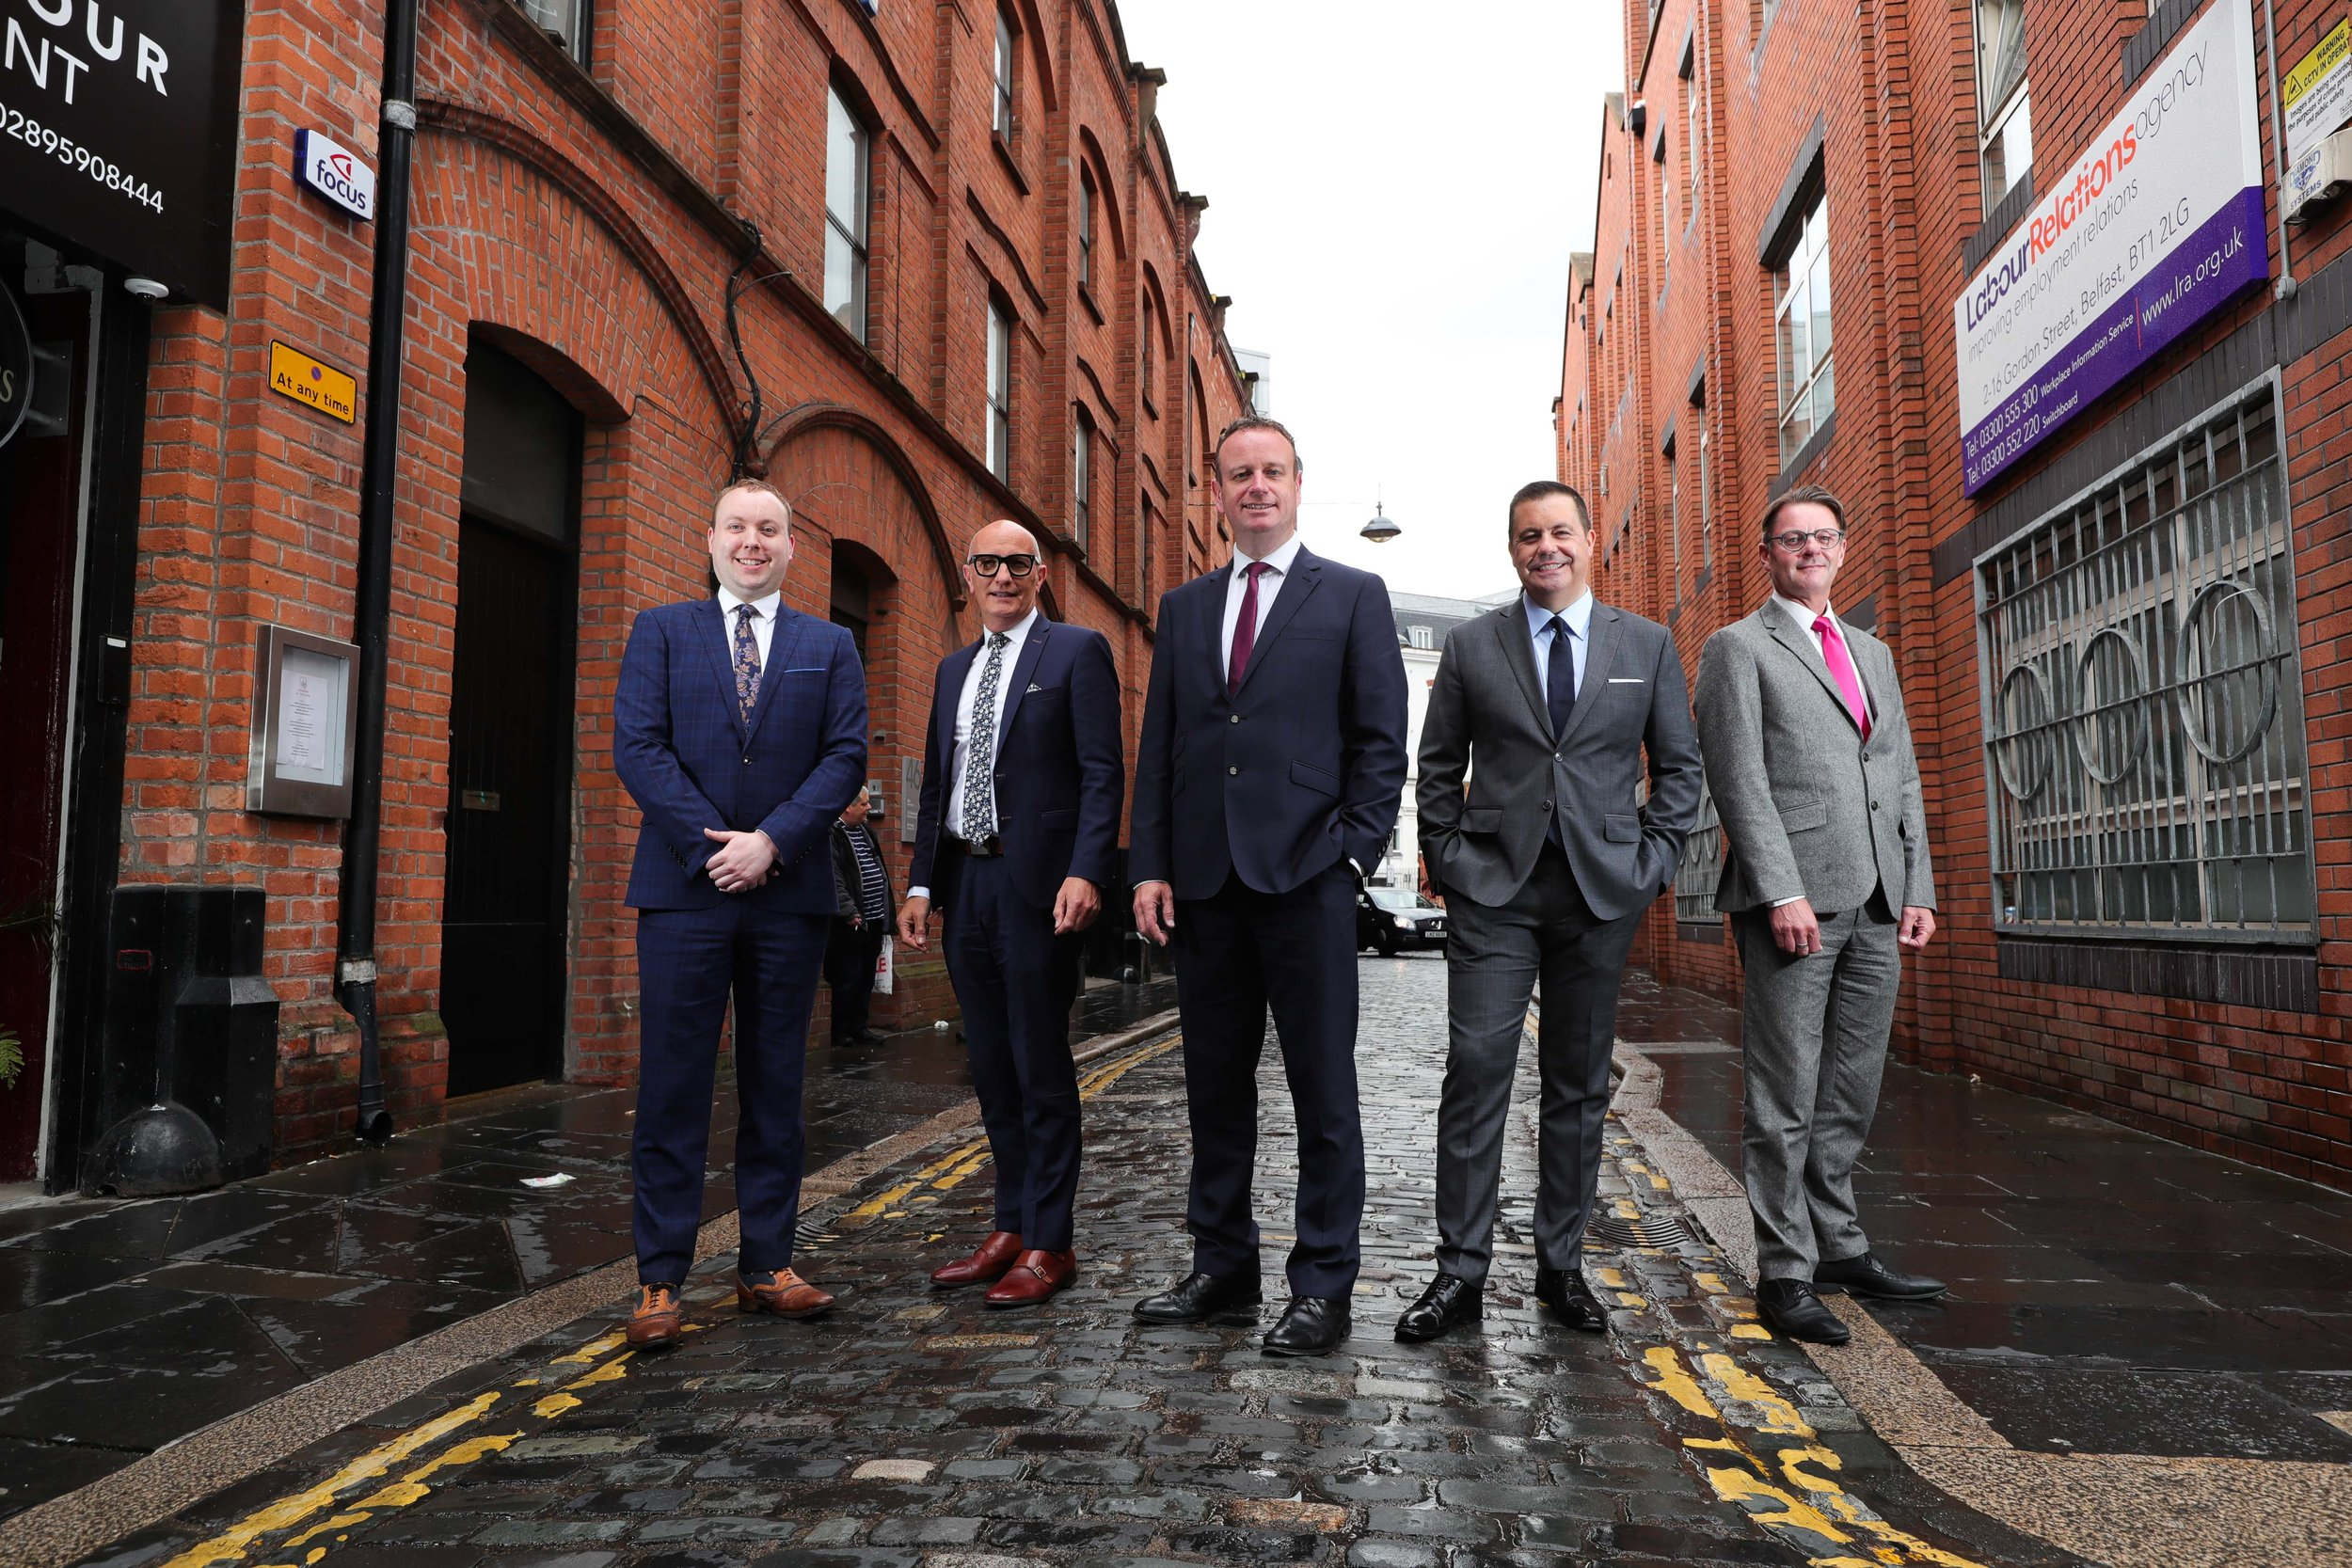 (Left to right) Conor Lambe, Chief Economist, Danske Bank (Sponsor), Colin Neill, Hospitality Ulster, Stephen Kelly, Manufacturing NI, Glyn Roberts, Retail NI, and Ken Harrower, Country Manager, Ireland Flybe (Sponsor).